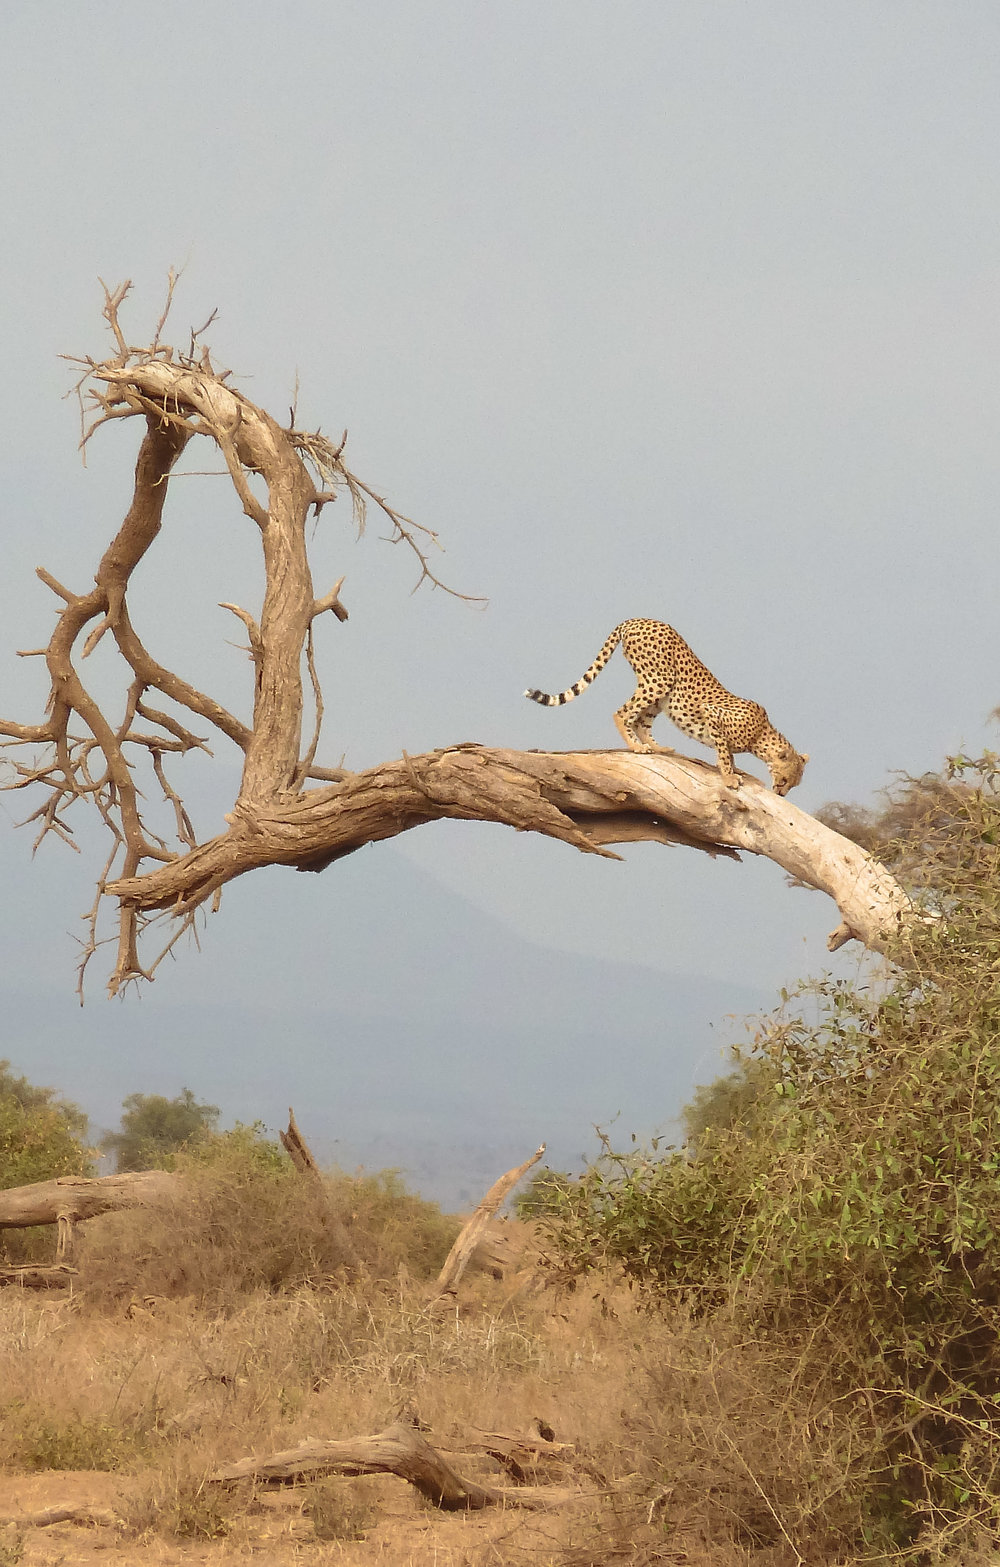 curio.trips.kenya.cheetah.bent.forward.tree.portrait.jpg